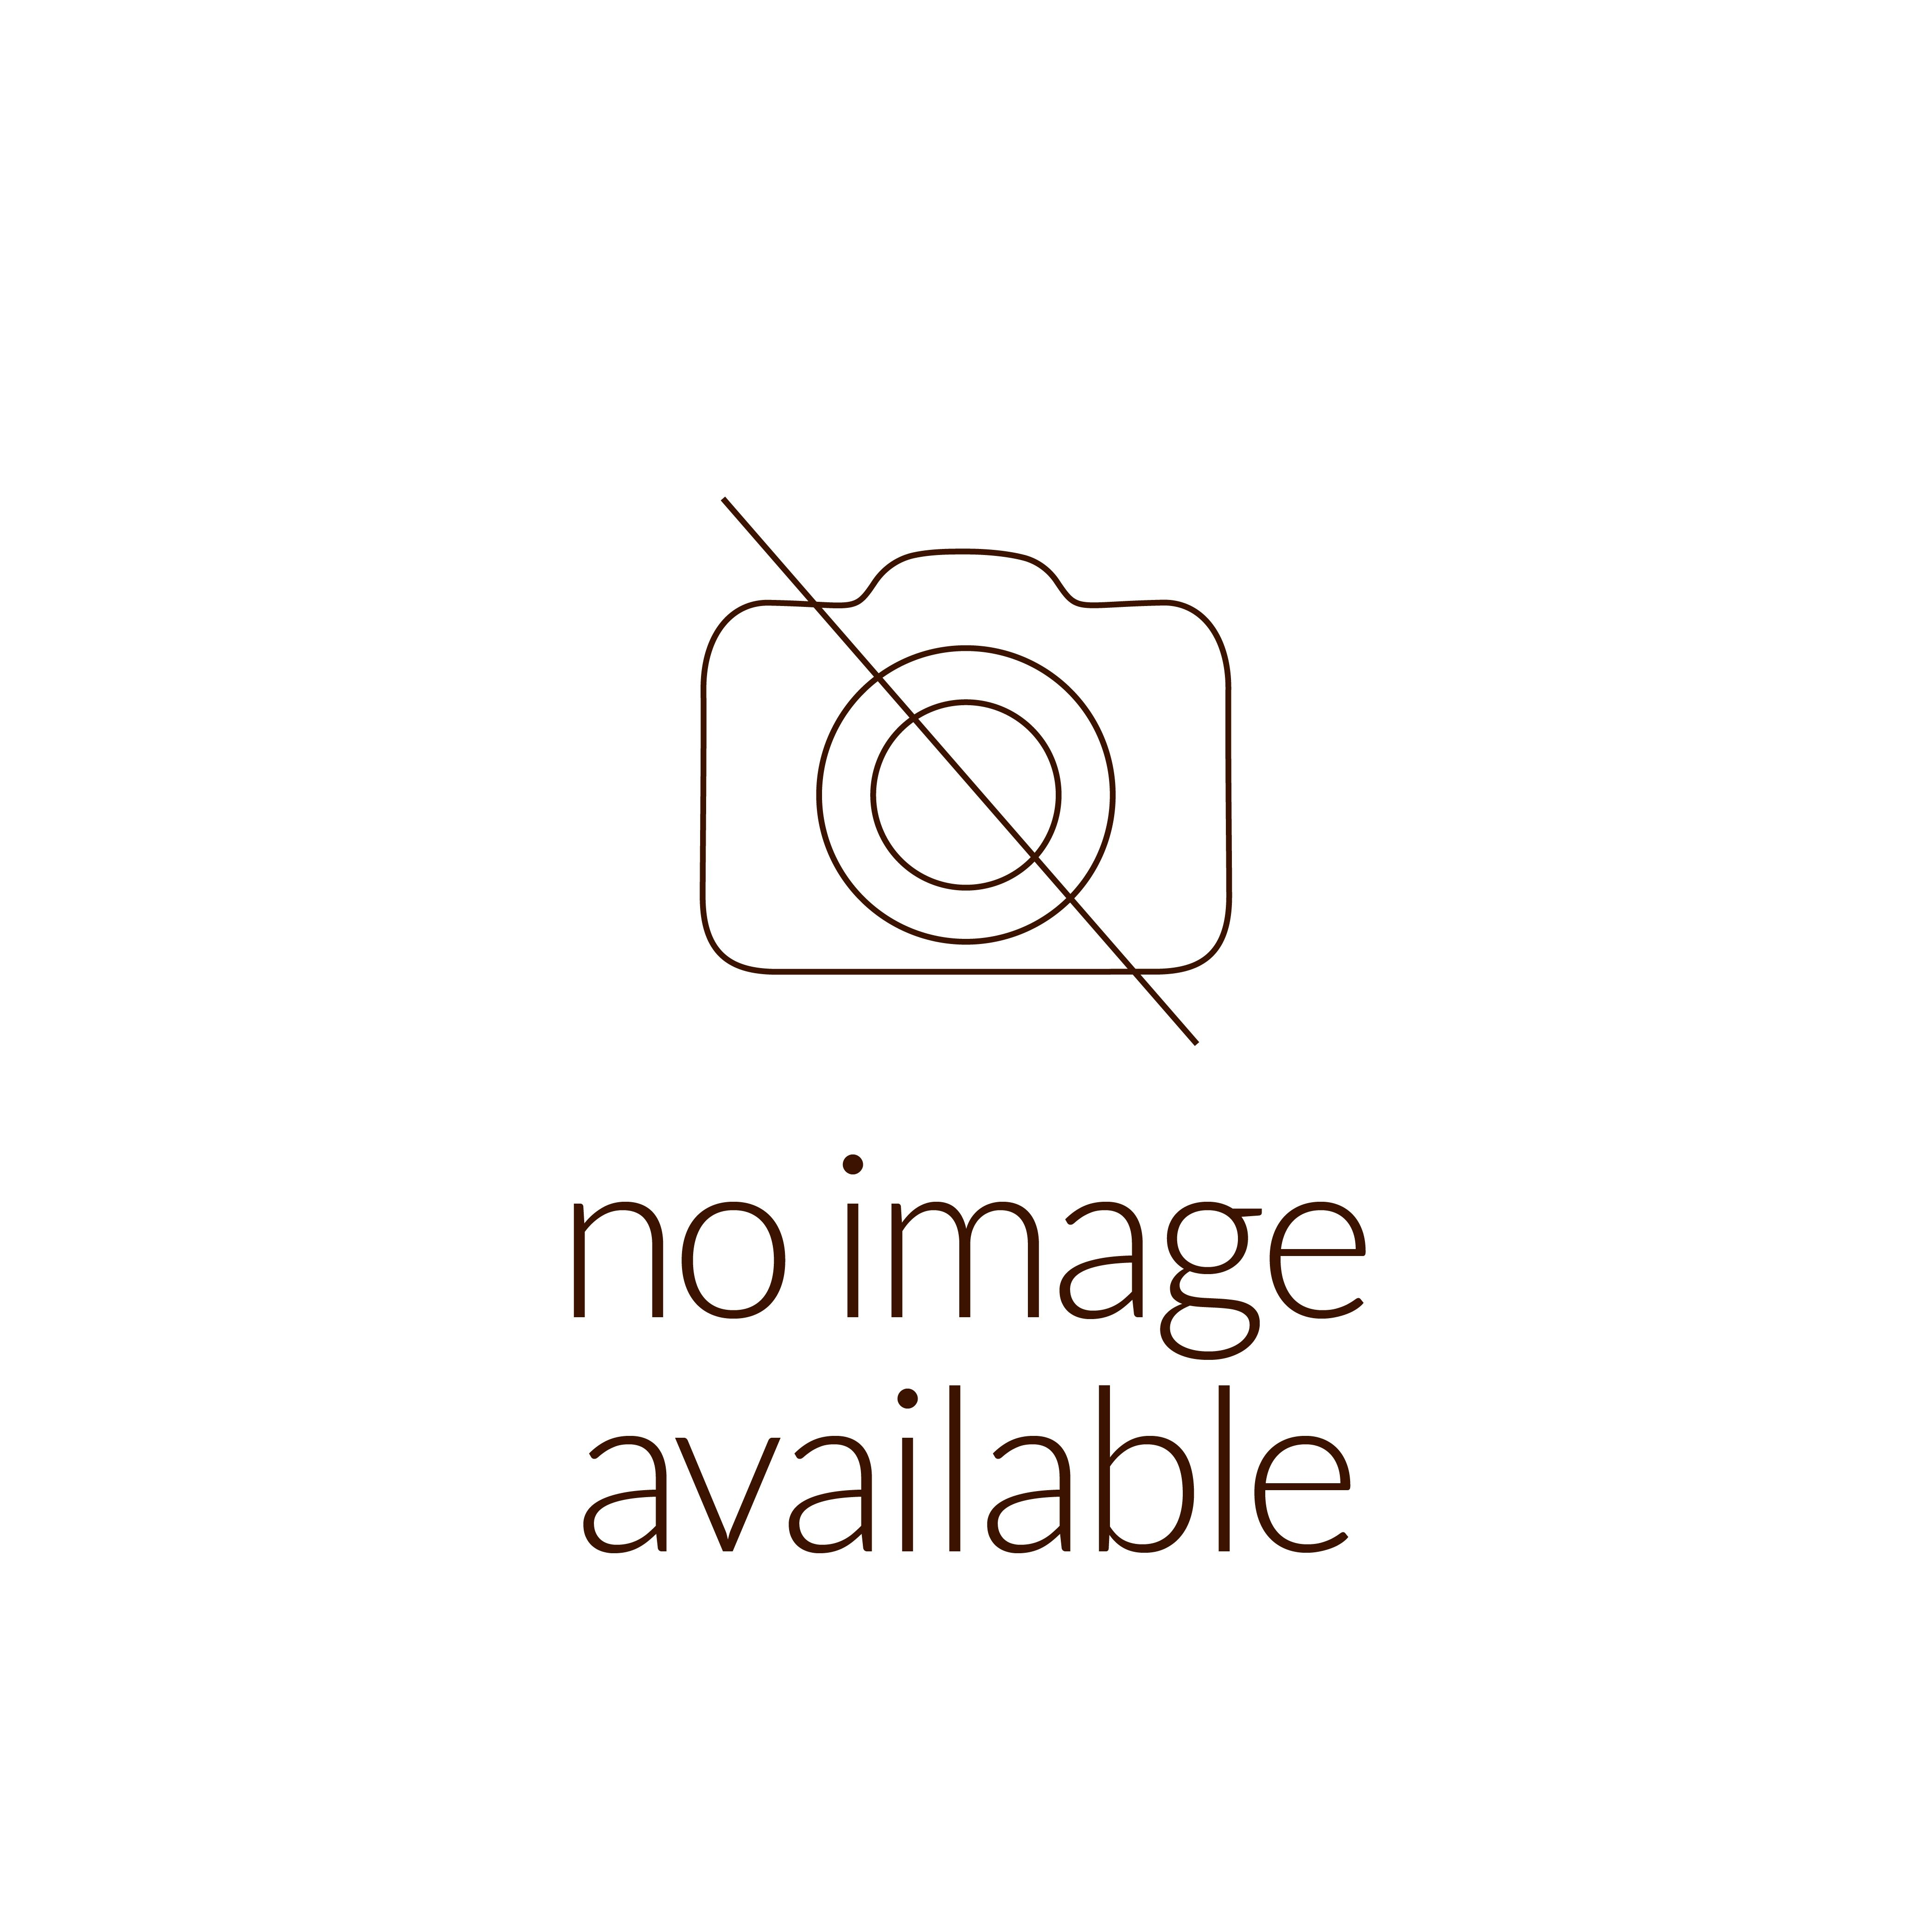 State Medal, Hercules, Airplanes that Made History, Bronze Tombac, 50.0 mm, 50 gr - Obverse